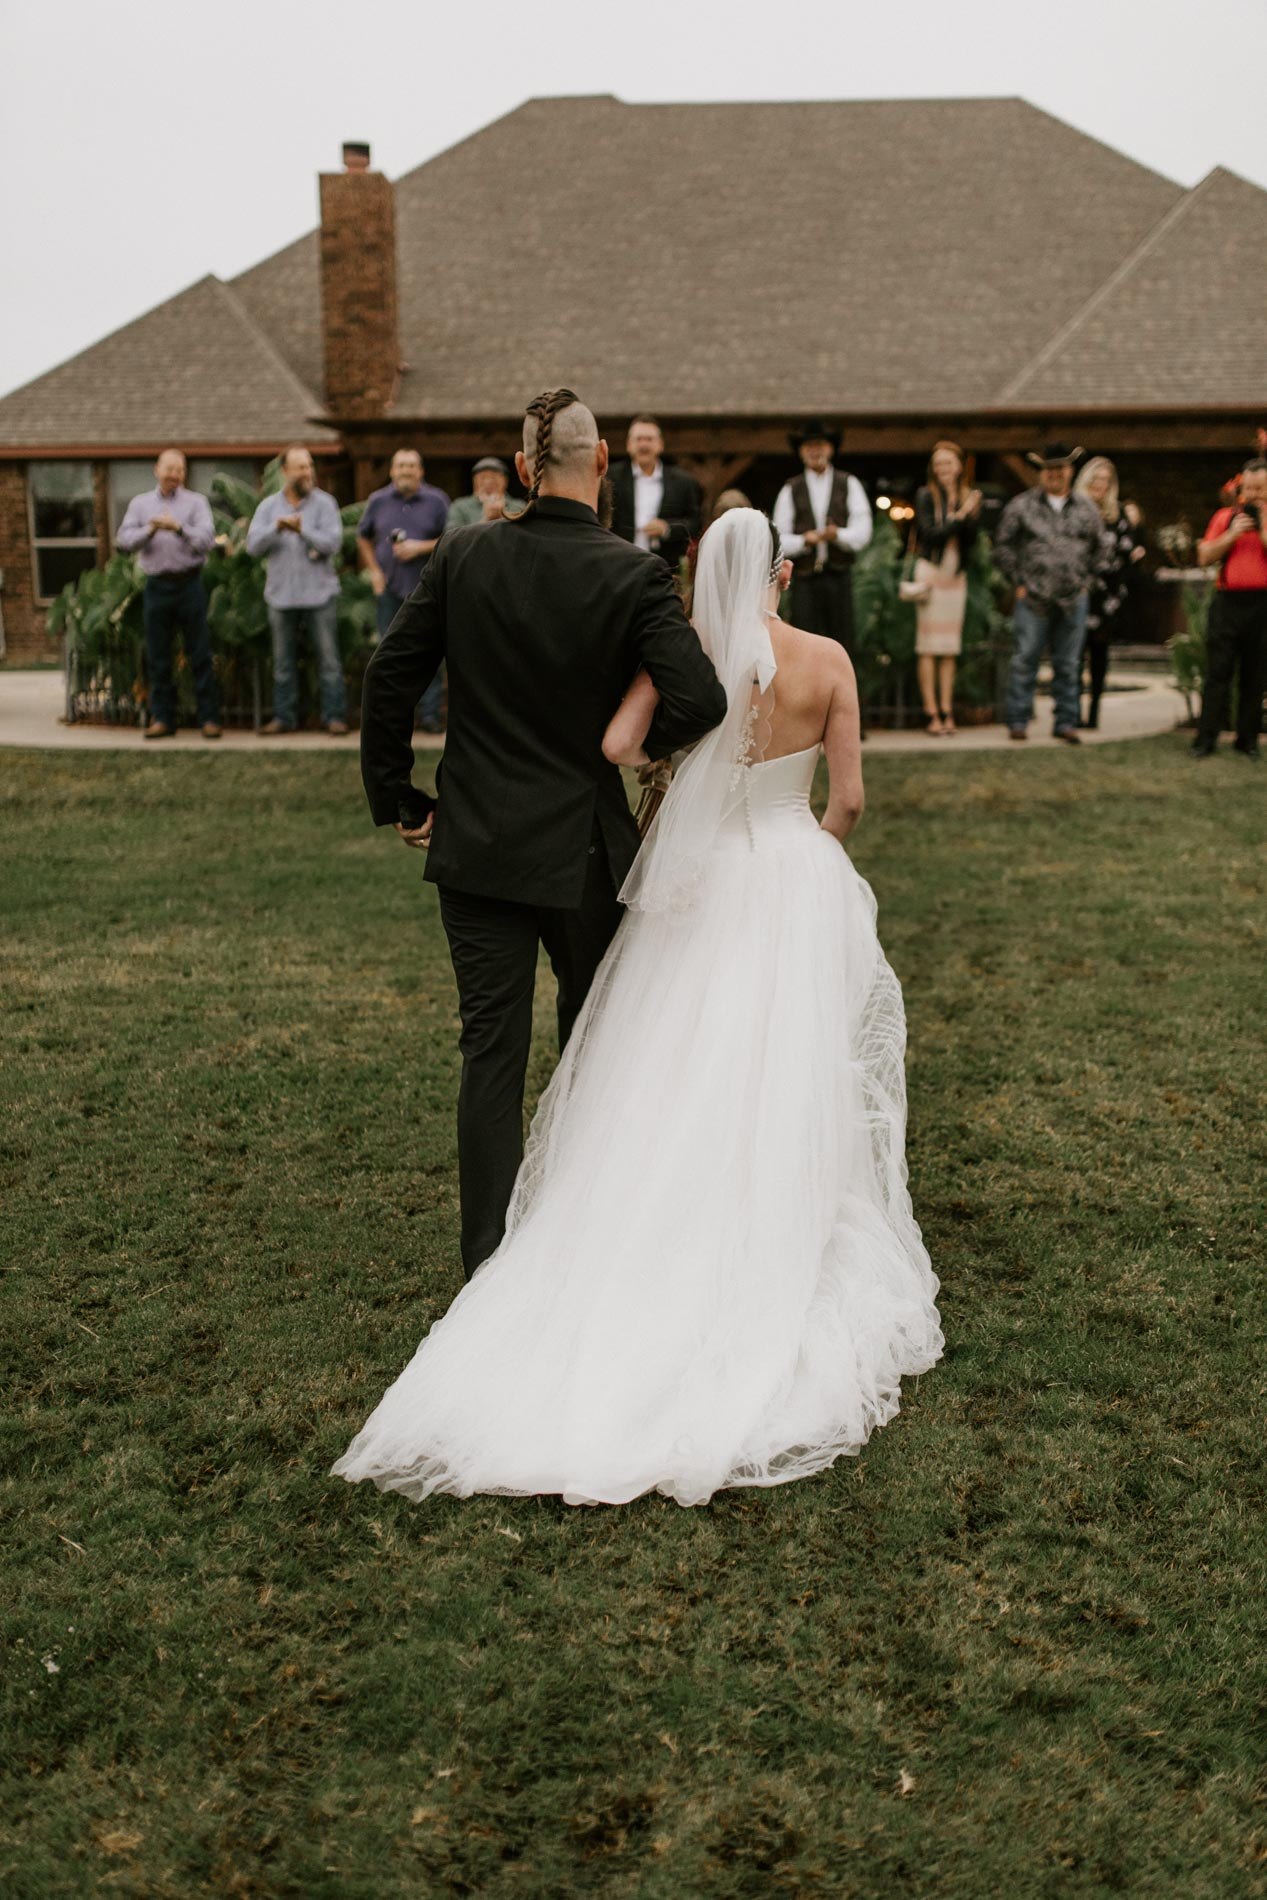 bride and groom walking out of wedding ceremony